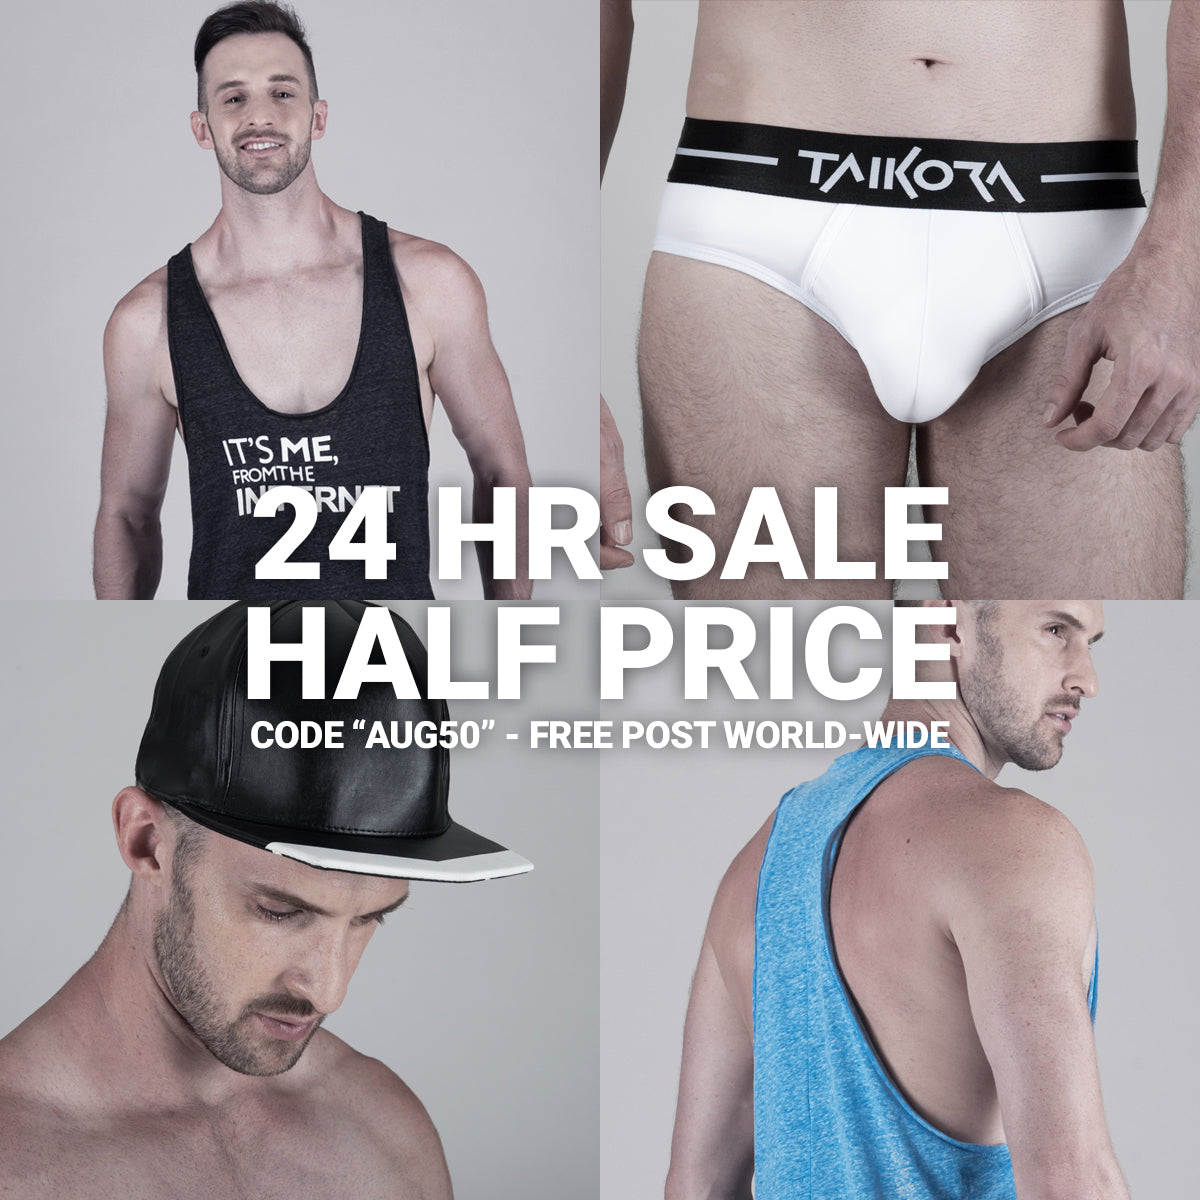 50% Off with code AUG50 for 24 hours!